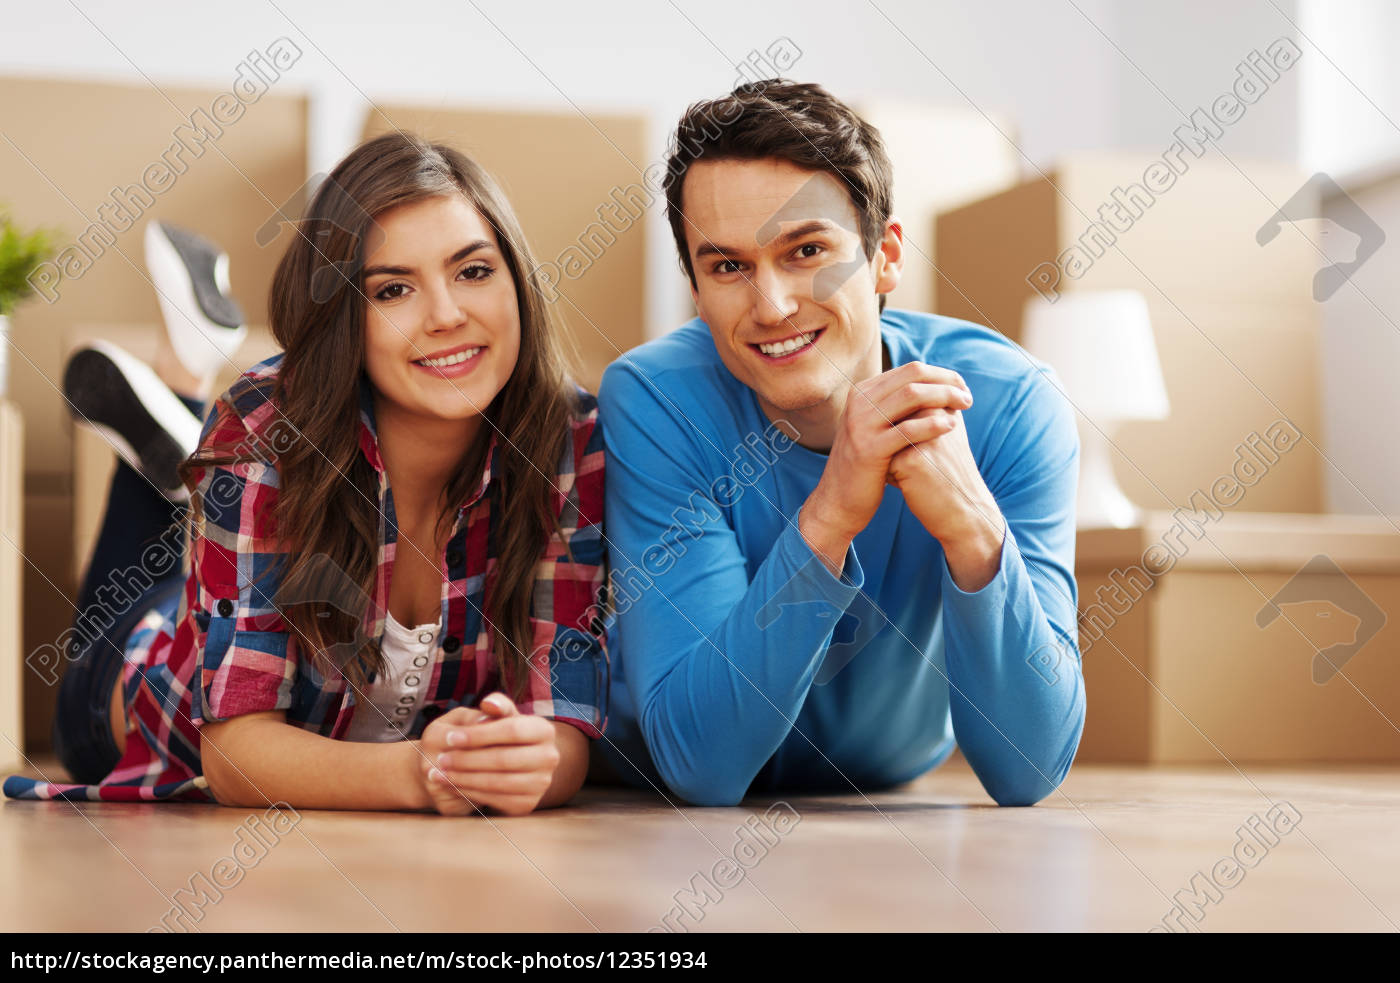 portrait, of, young, couple, in, their - 12351934